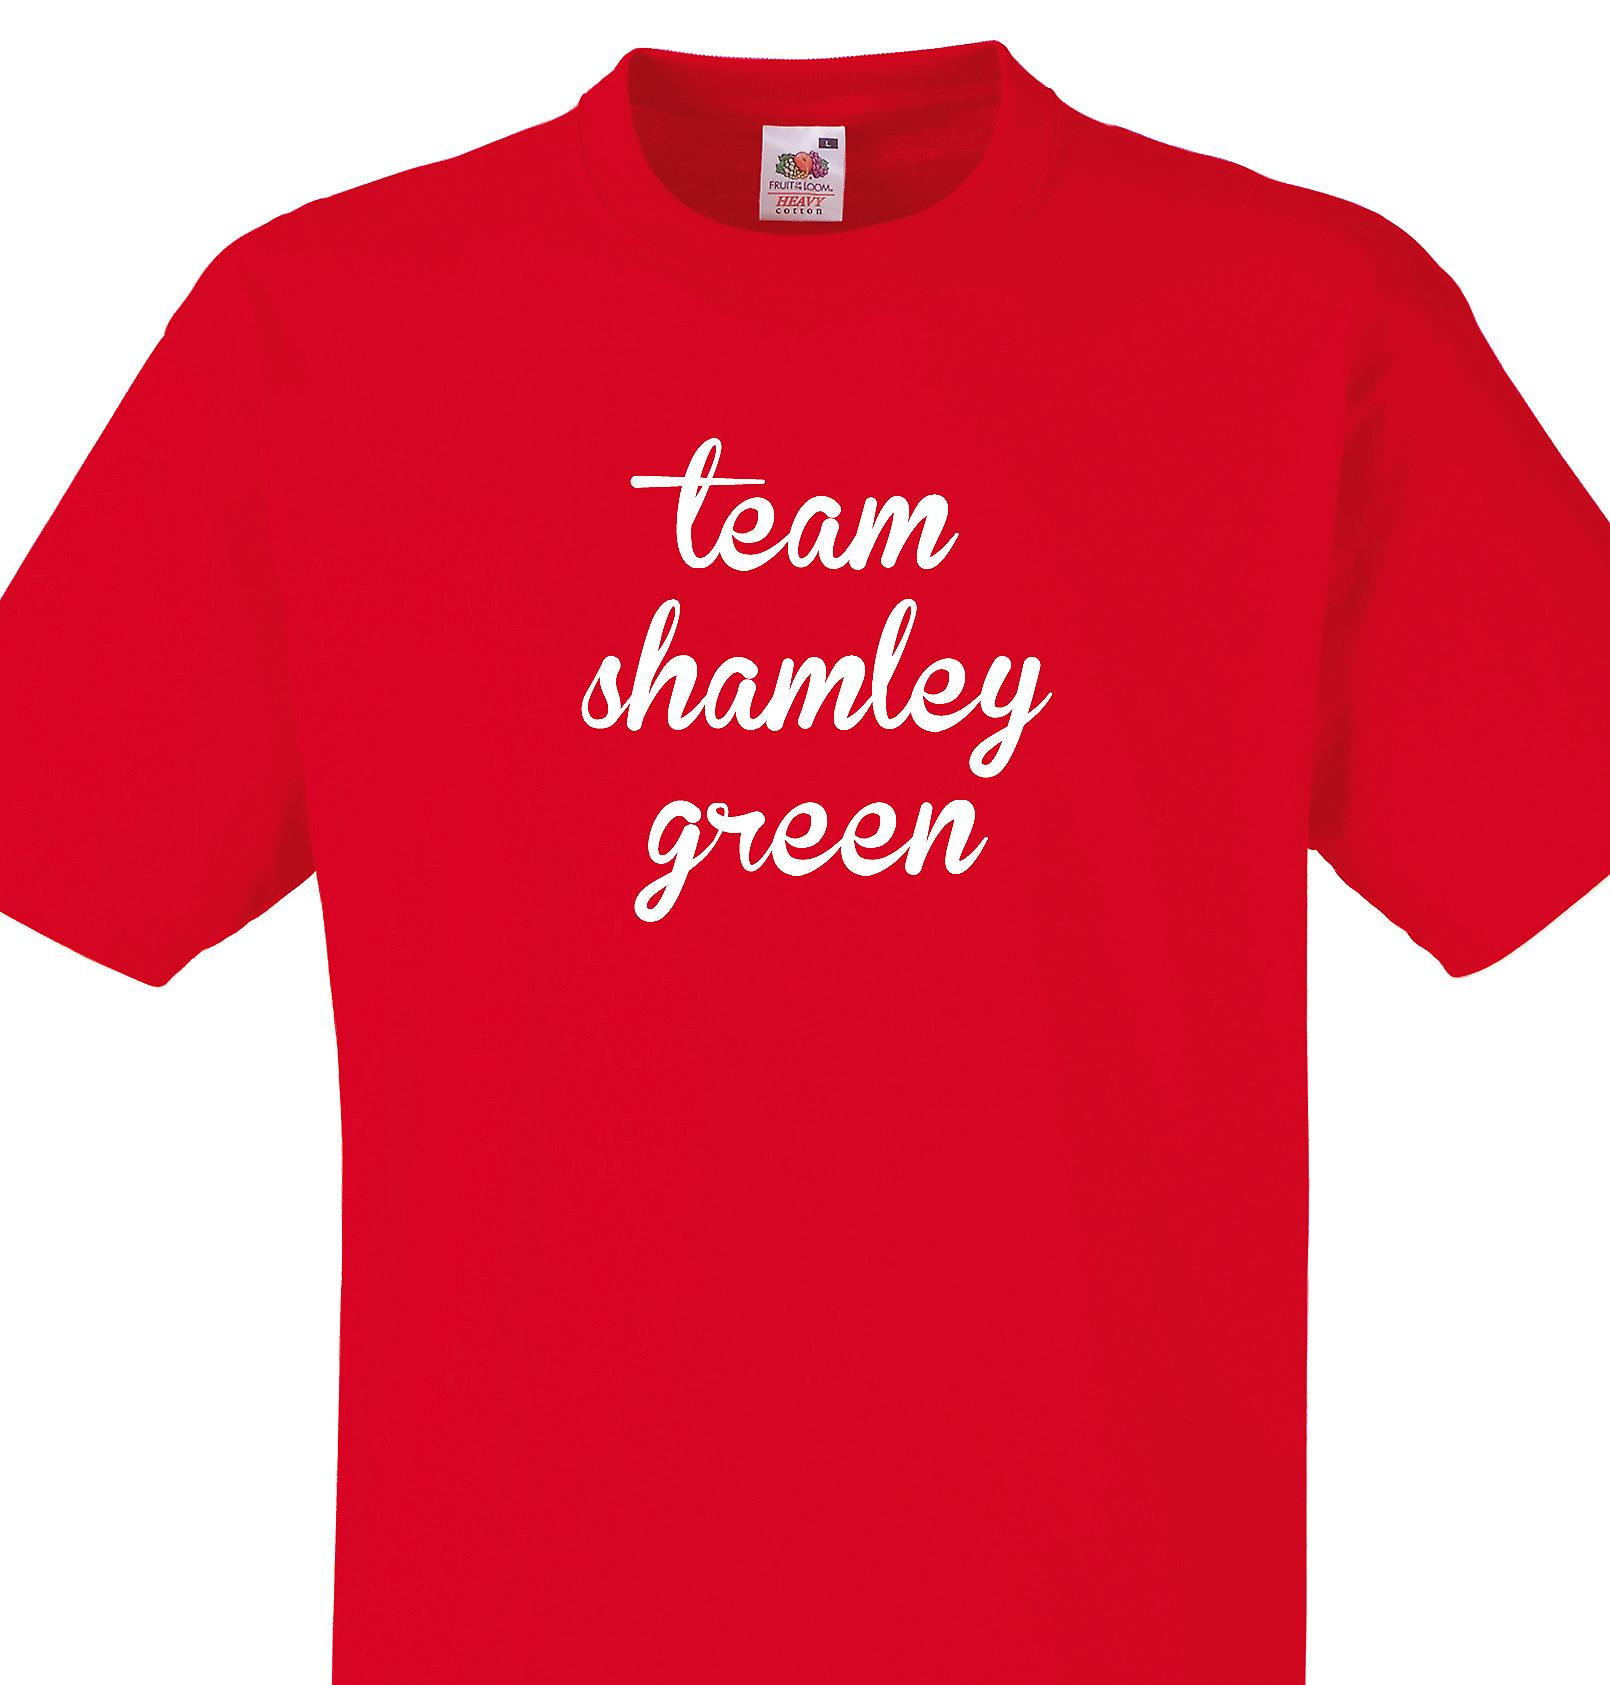 Team Shamley green Red T shirt